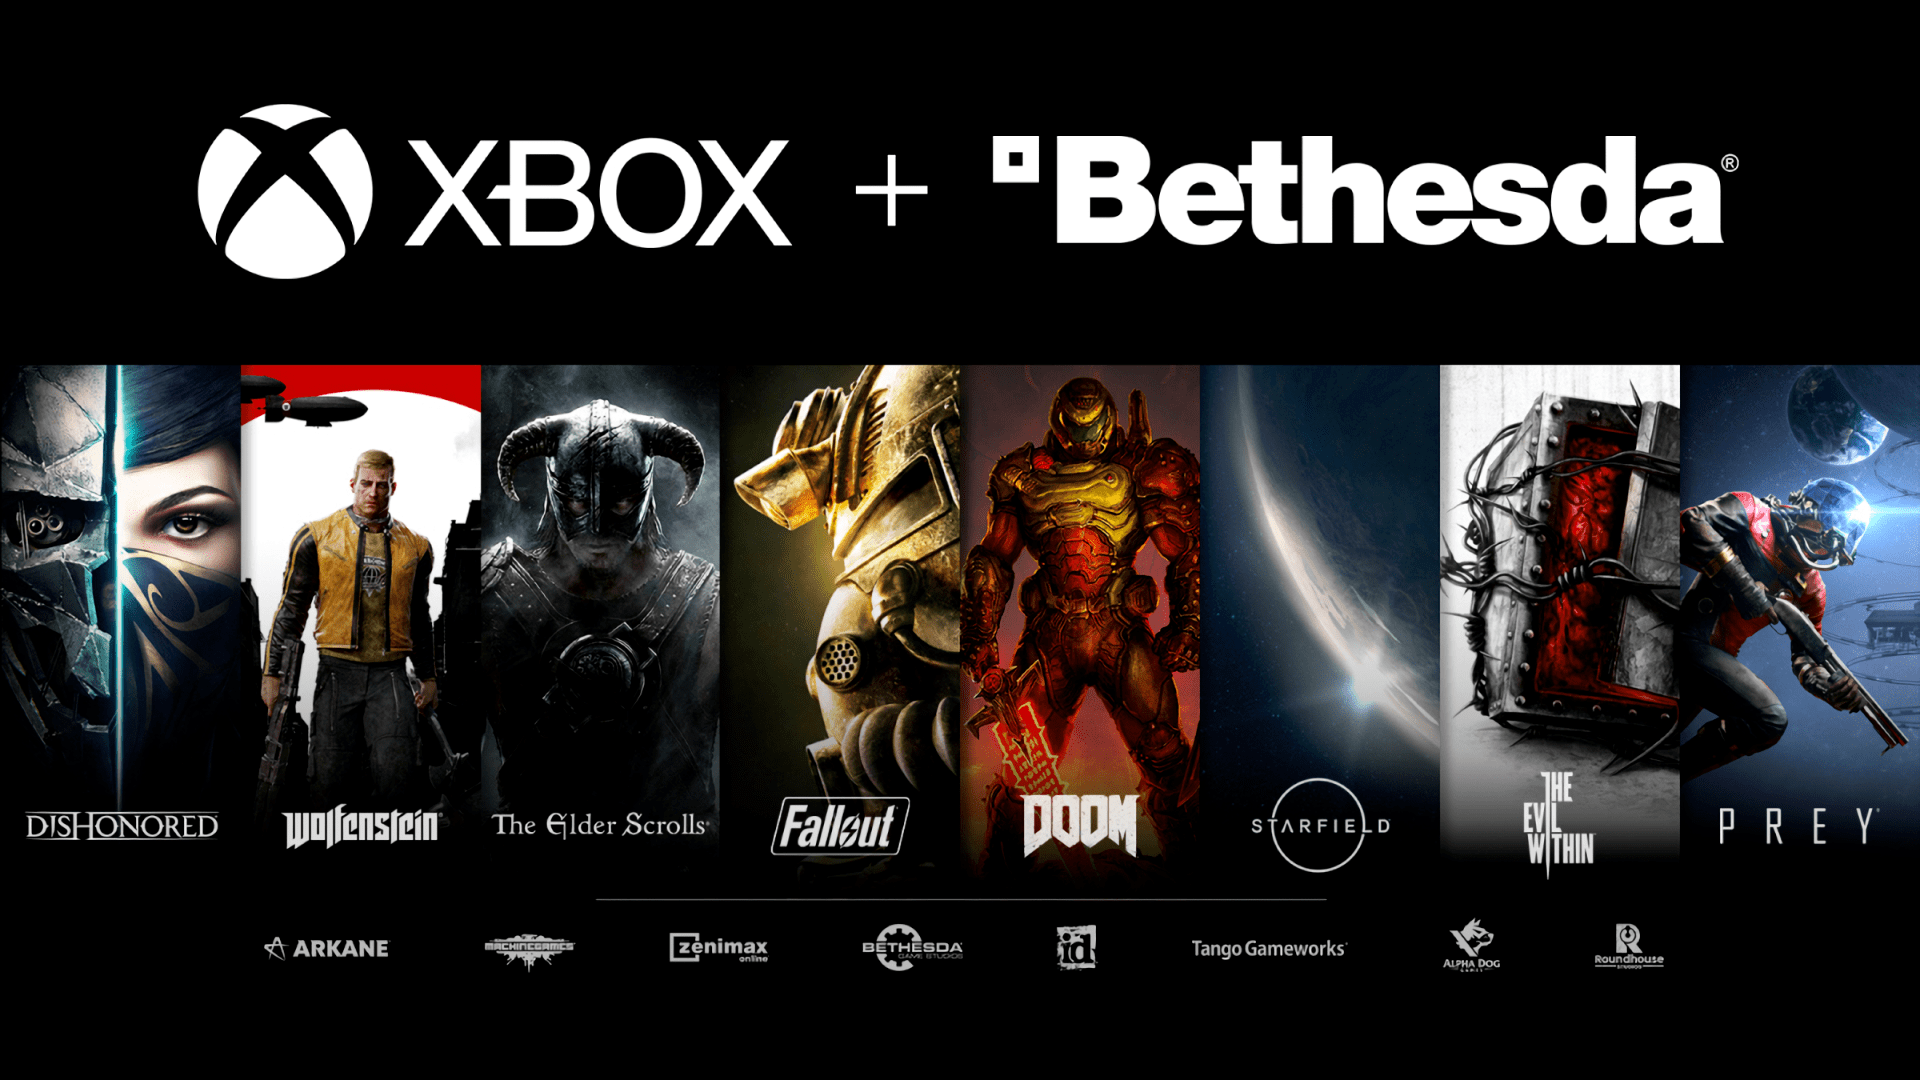 Xbox boss: Microsoft can survive its $7.5 billion Bethesda purchase without bringing future titles to PS5